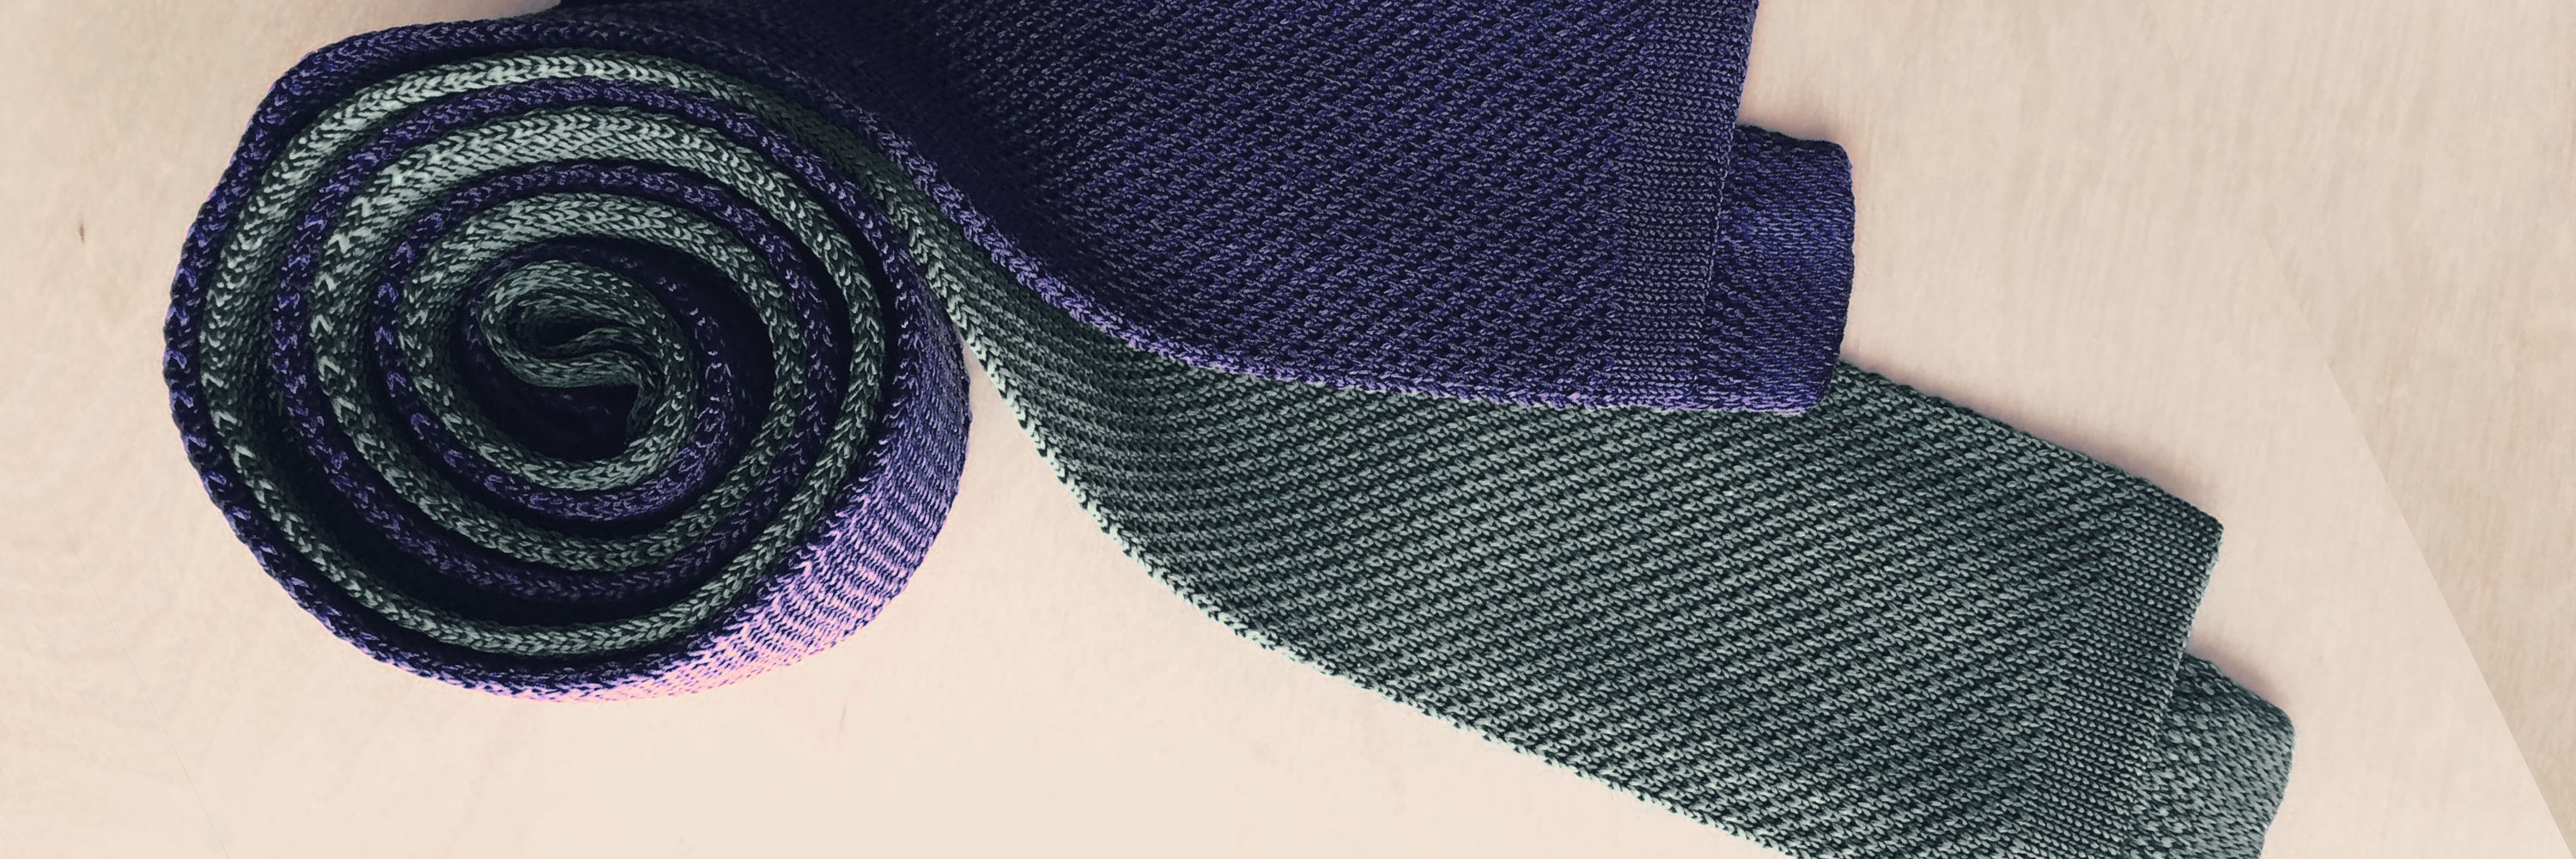 rolled up knit ties in purple and grey